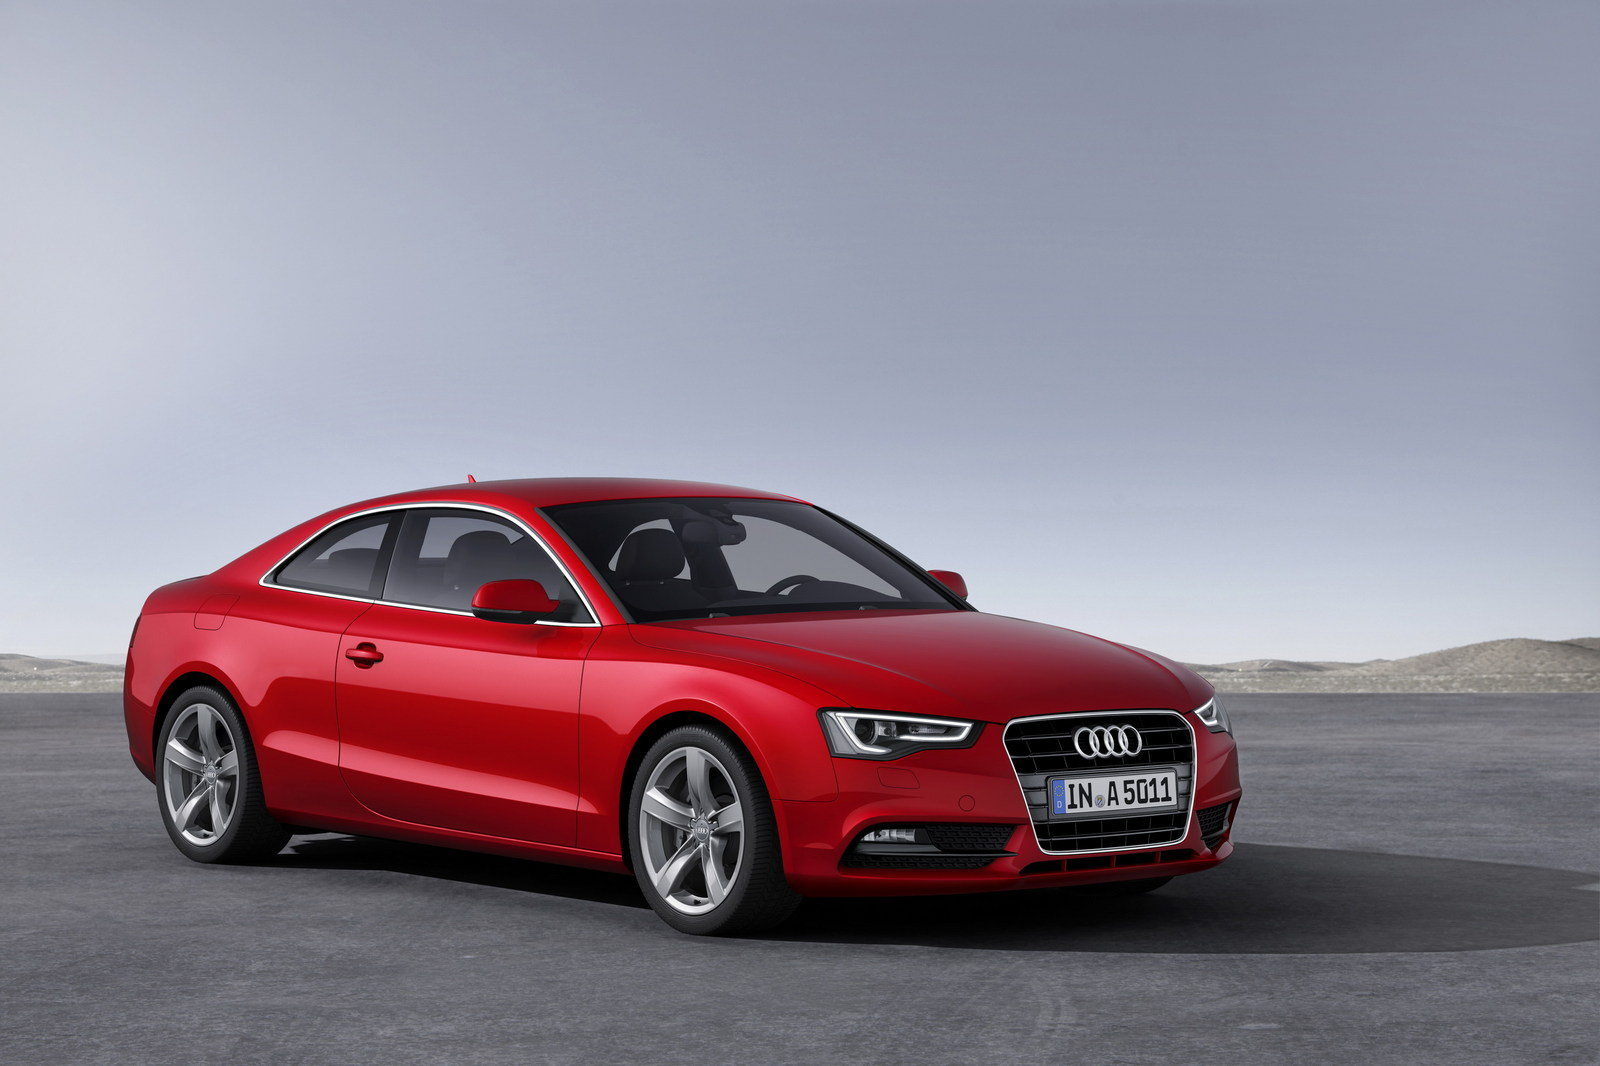 2014 audi a5 tdi ultra review top speed. Black Bedroom Furniture Sets. Home Design Ideas